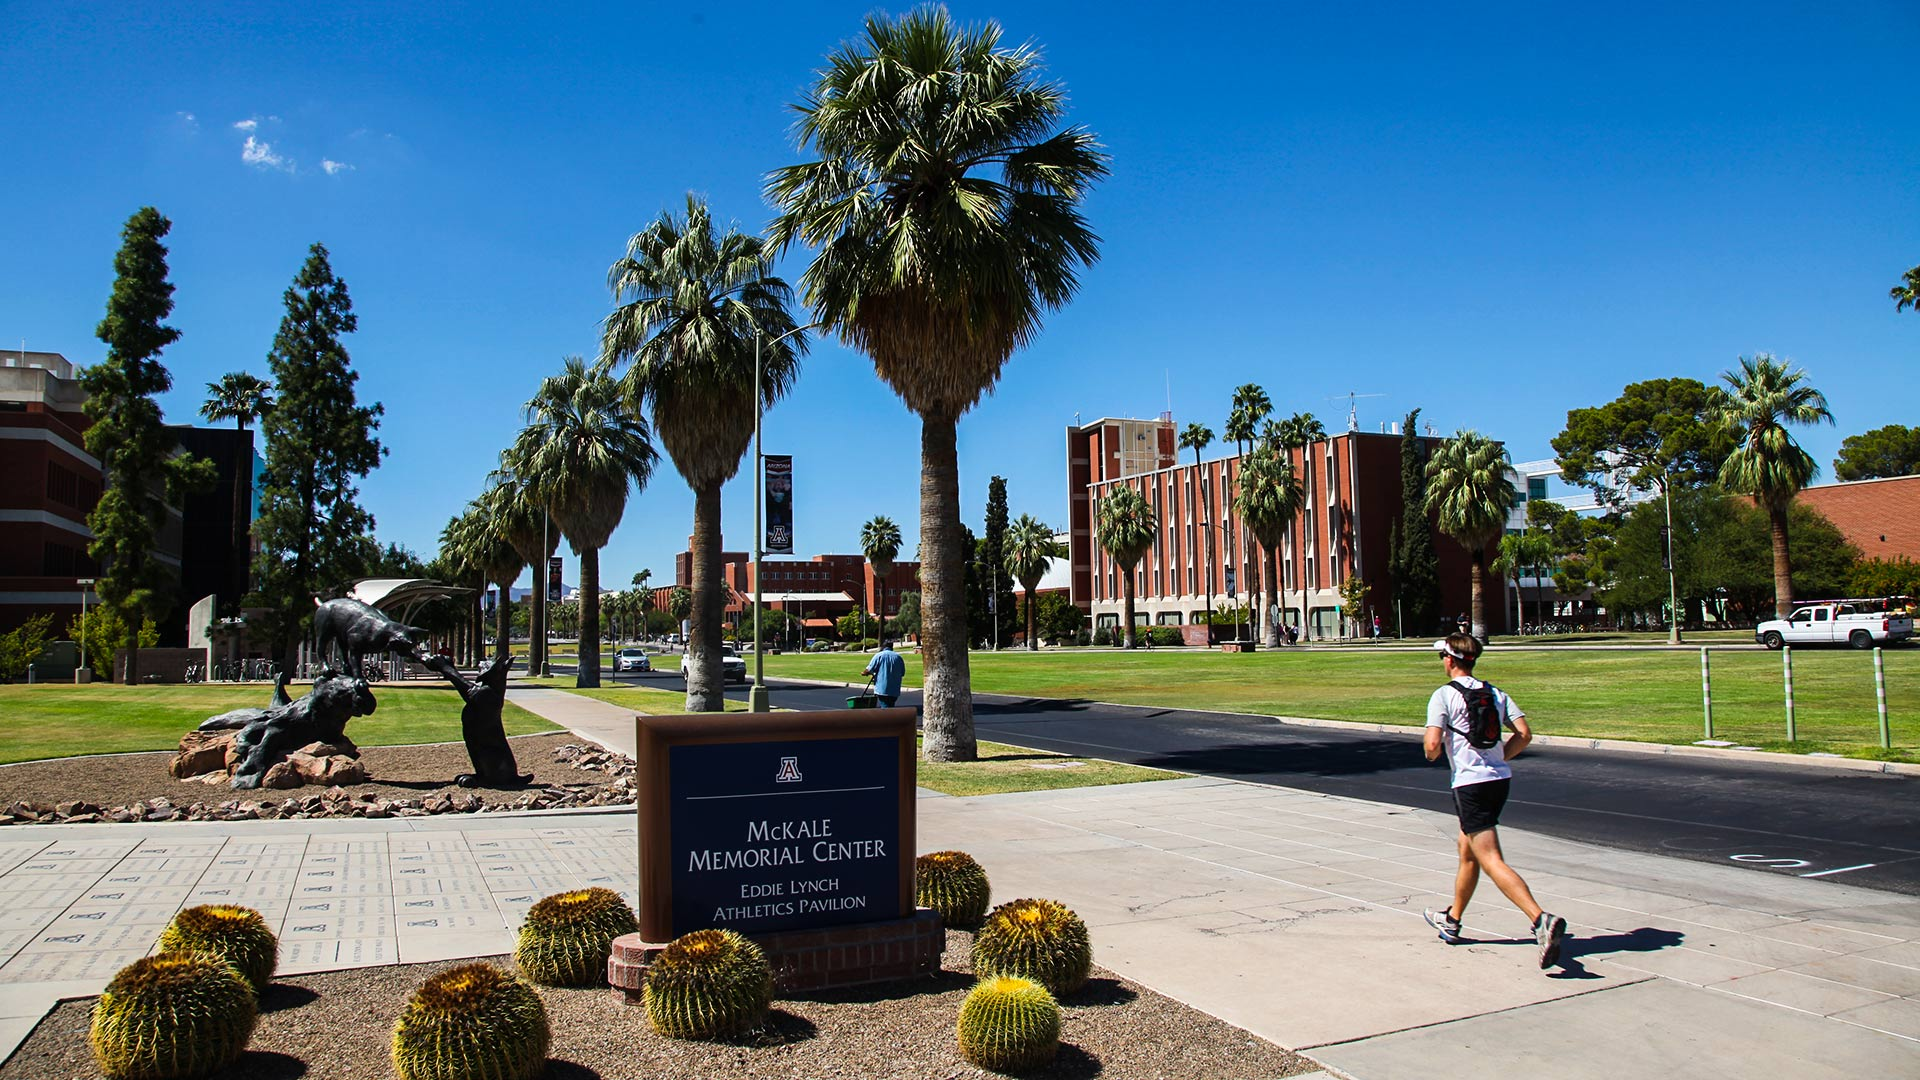 The McKale Memorial Center, home of the University of Arizona basketball team, on the UA campus.